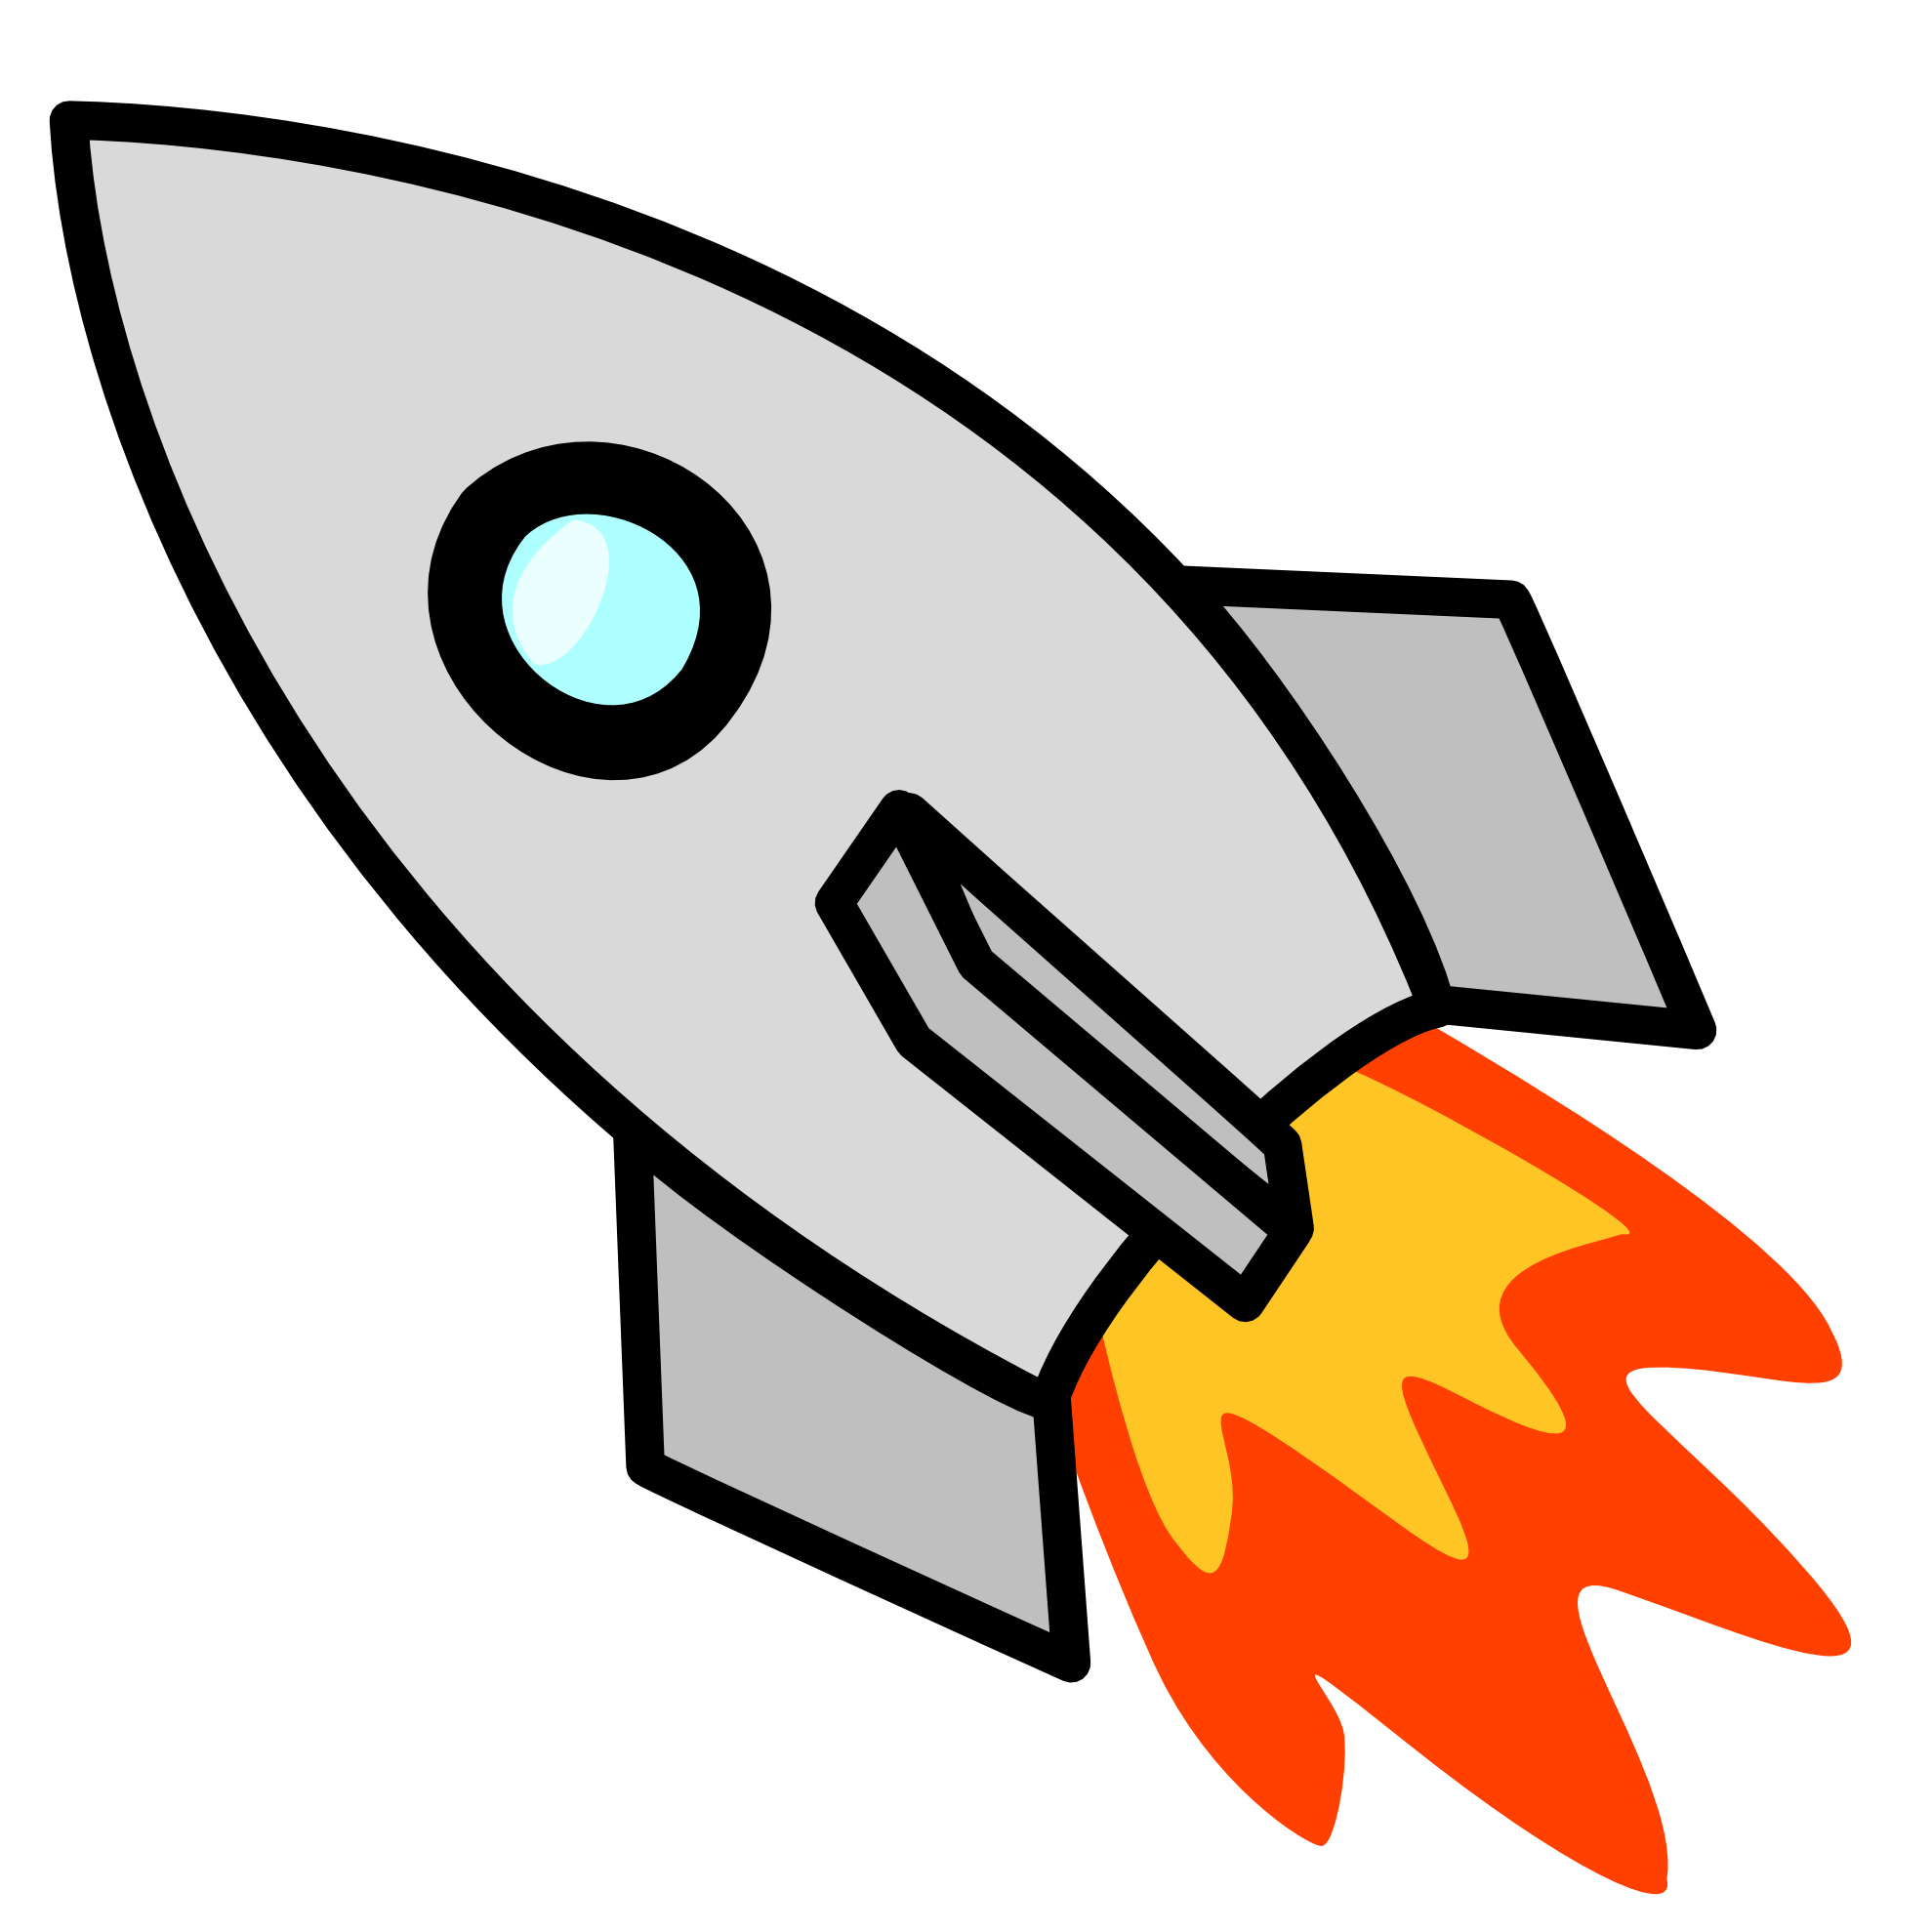 Science clipart rocket ship #8